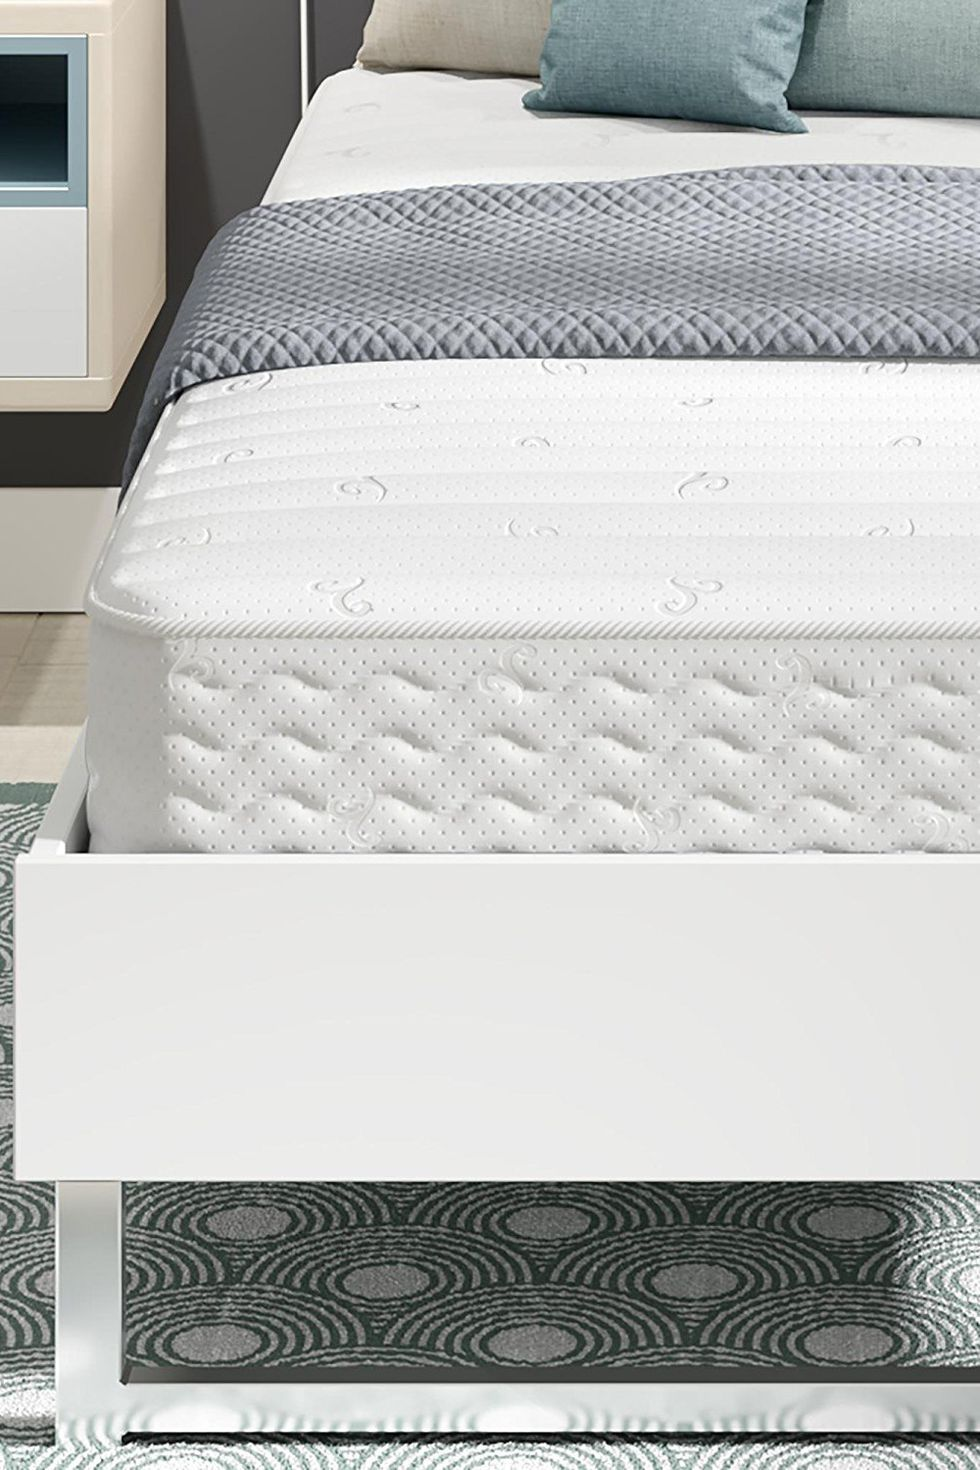 When To Buy A New Mattress Stop Getting Crappy Sleep And Just Buy A New Mattress Already